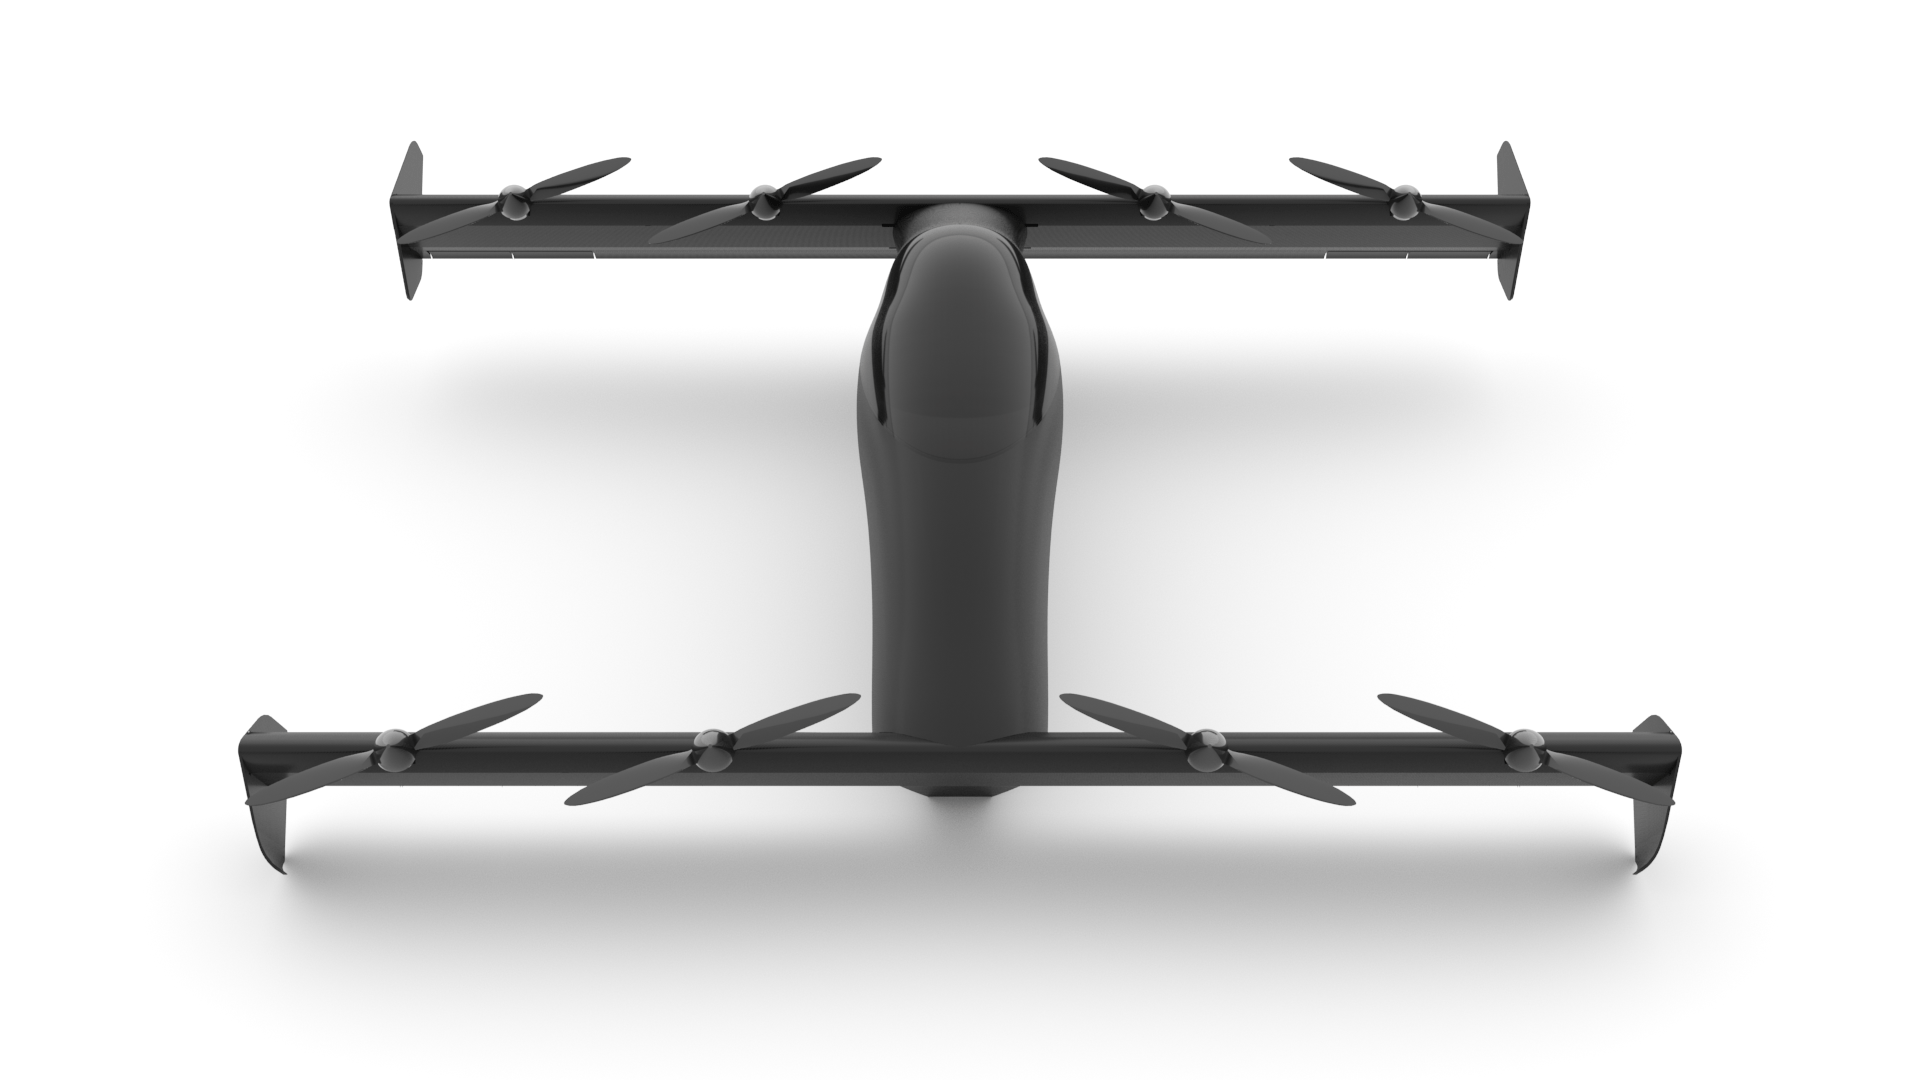 Opener's Blackfly Vtol Aircraft Is Set to Turn Us All into Pilots